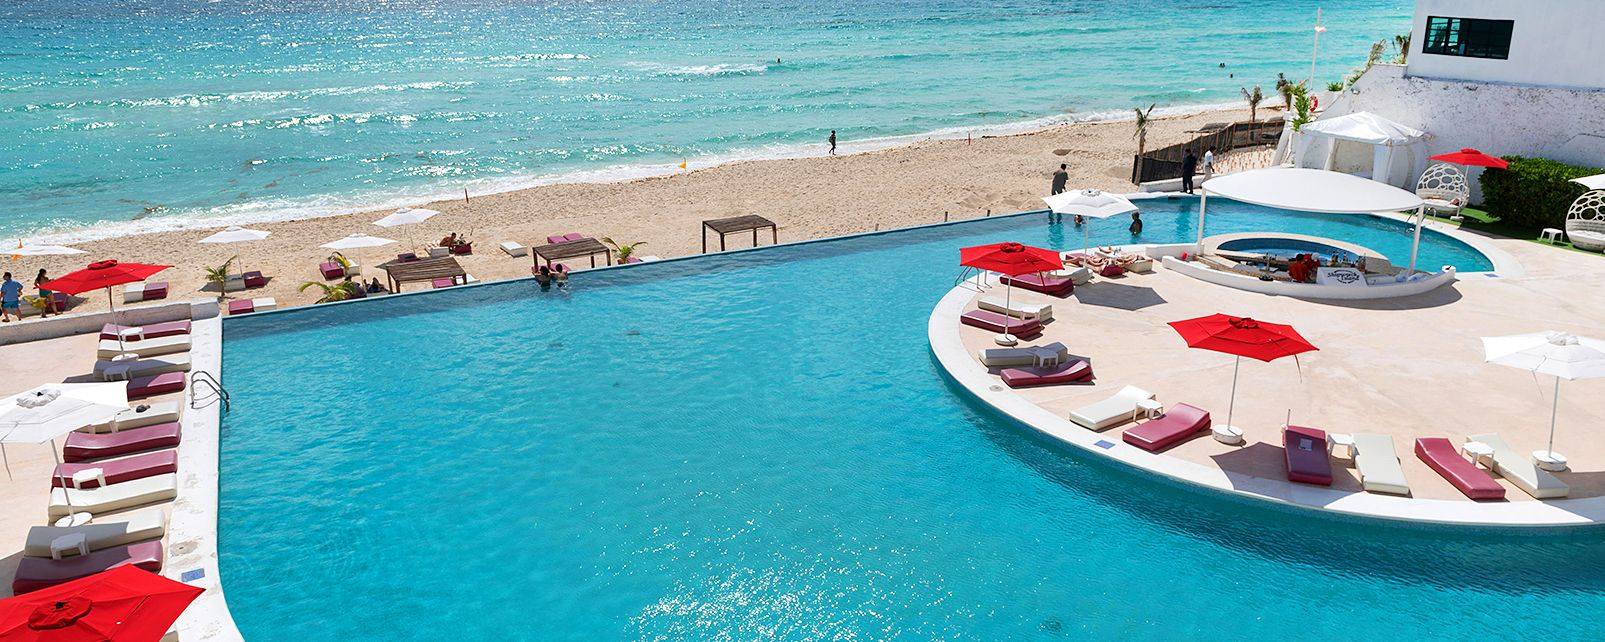 Hotel Bel Air Collection Spa Cancun